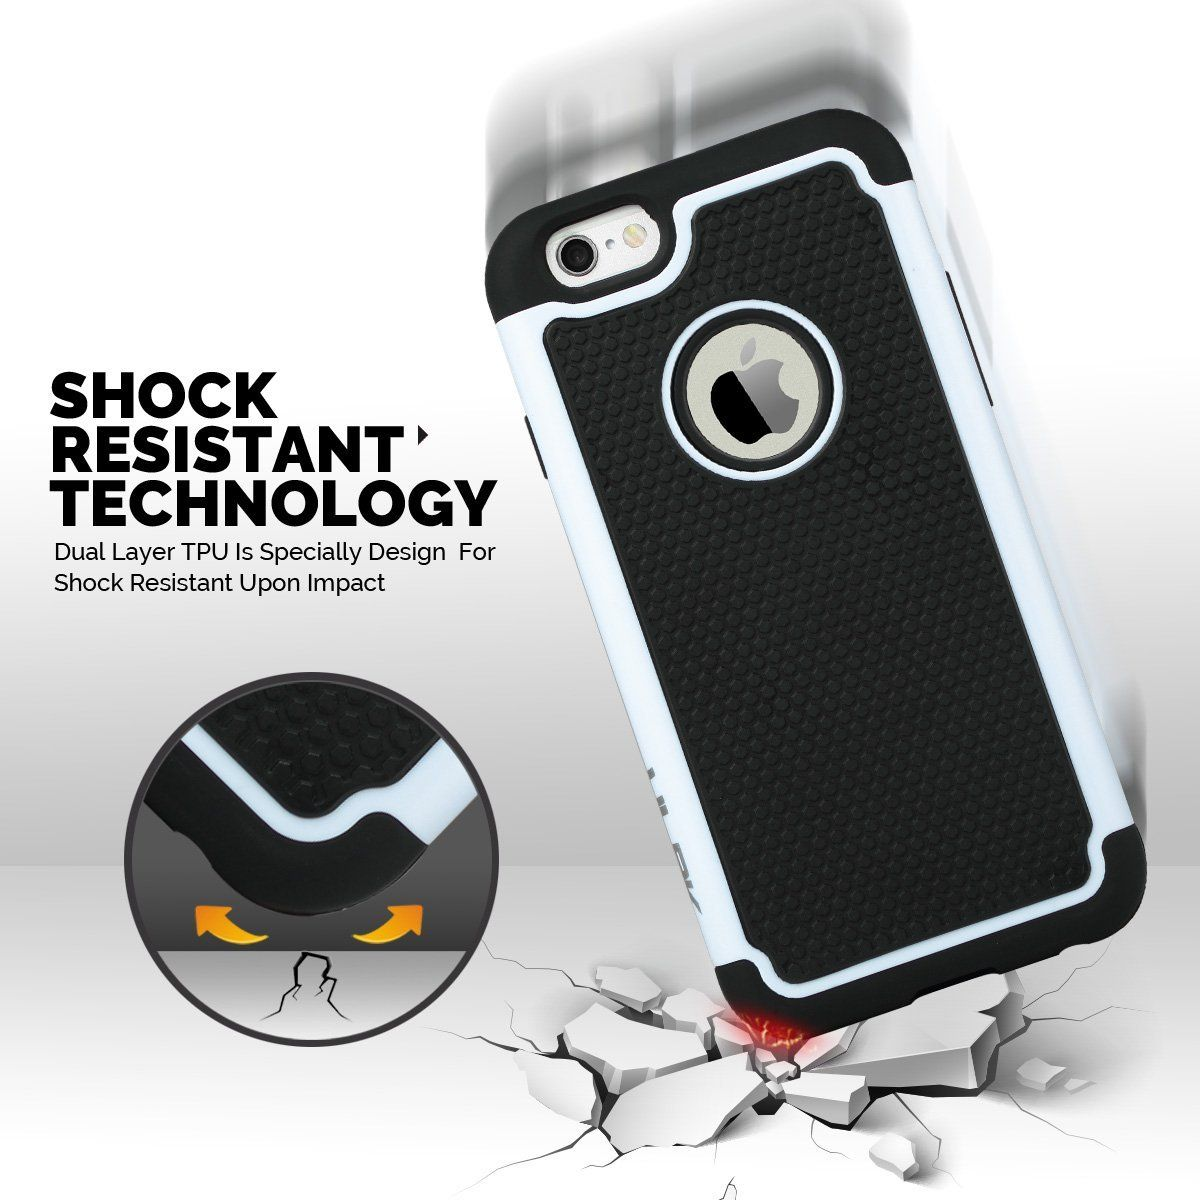 Quick! Scoop this iPhone 6 & 6S case for only $5 today only